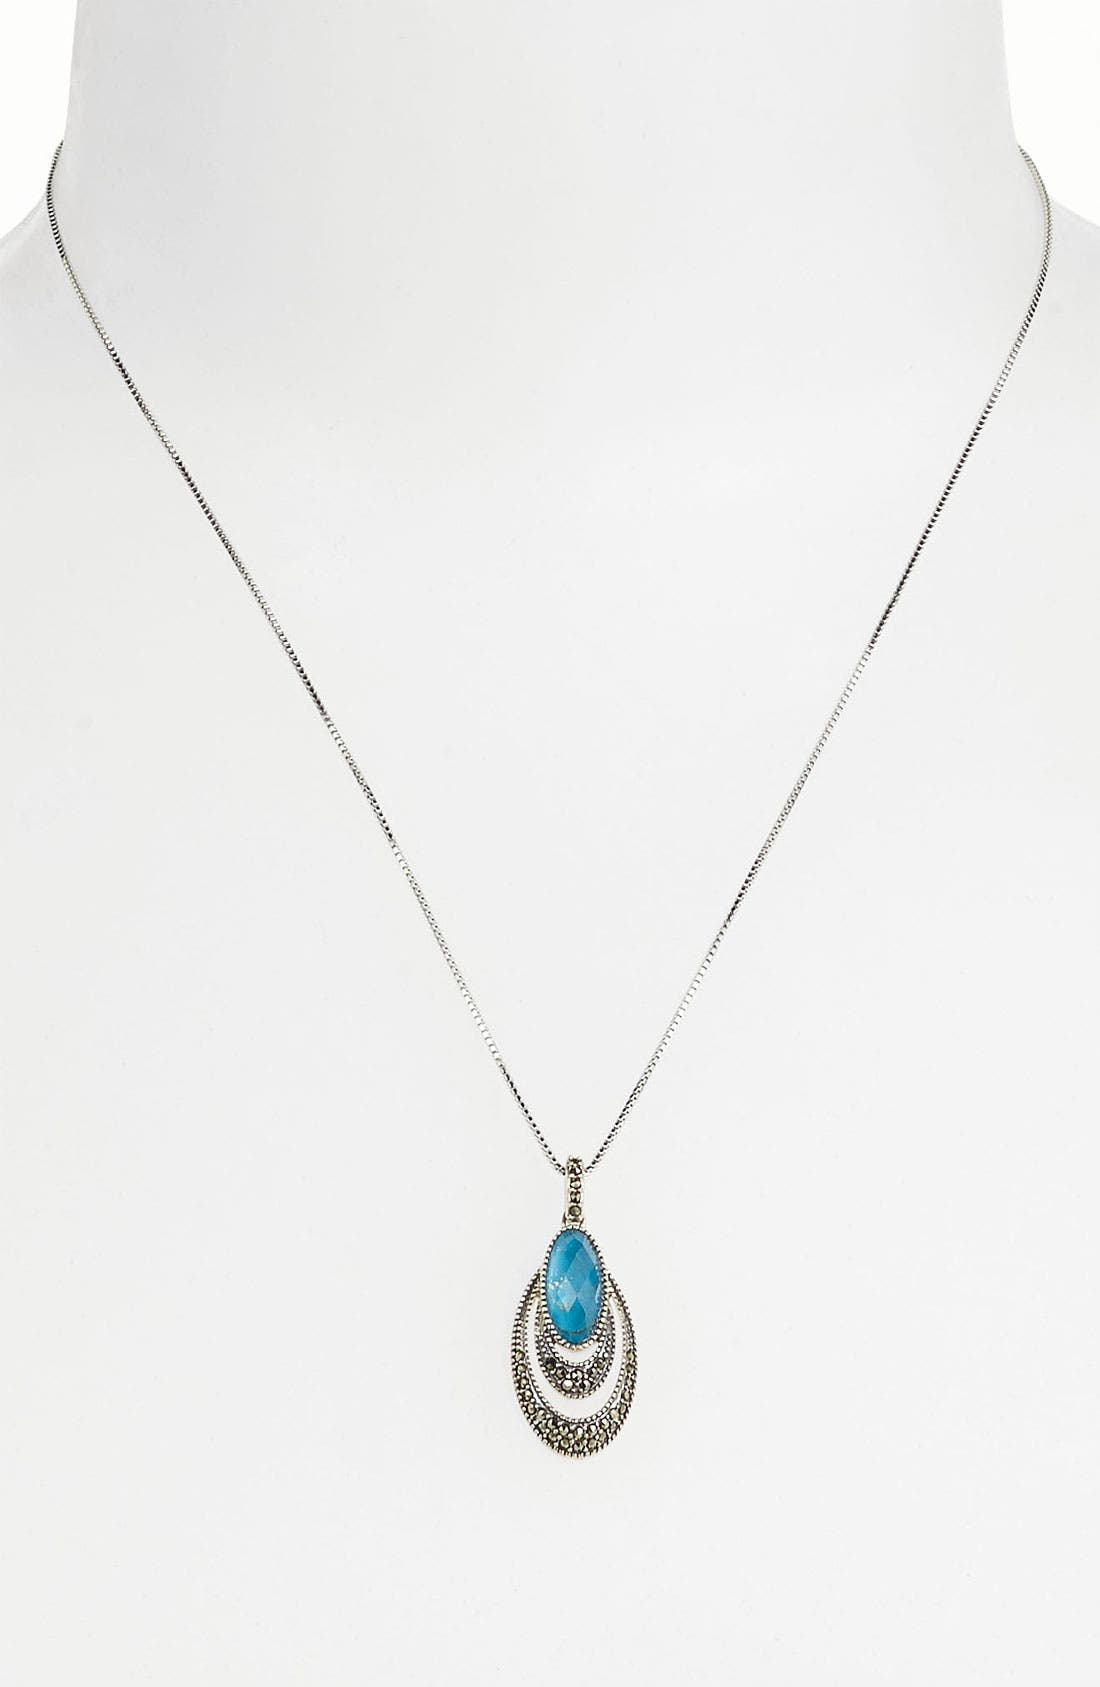 Alternate Image 1 Selected - Judith Jack Pendant Necklace